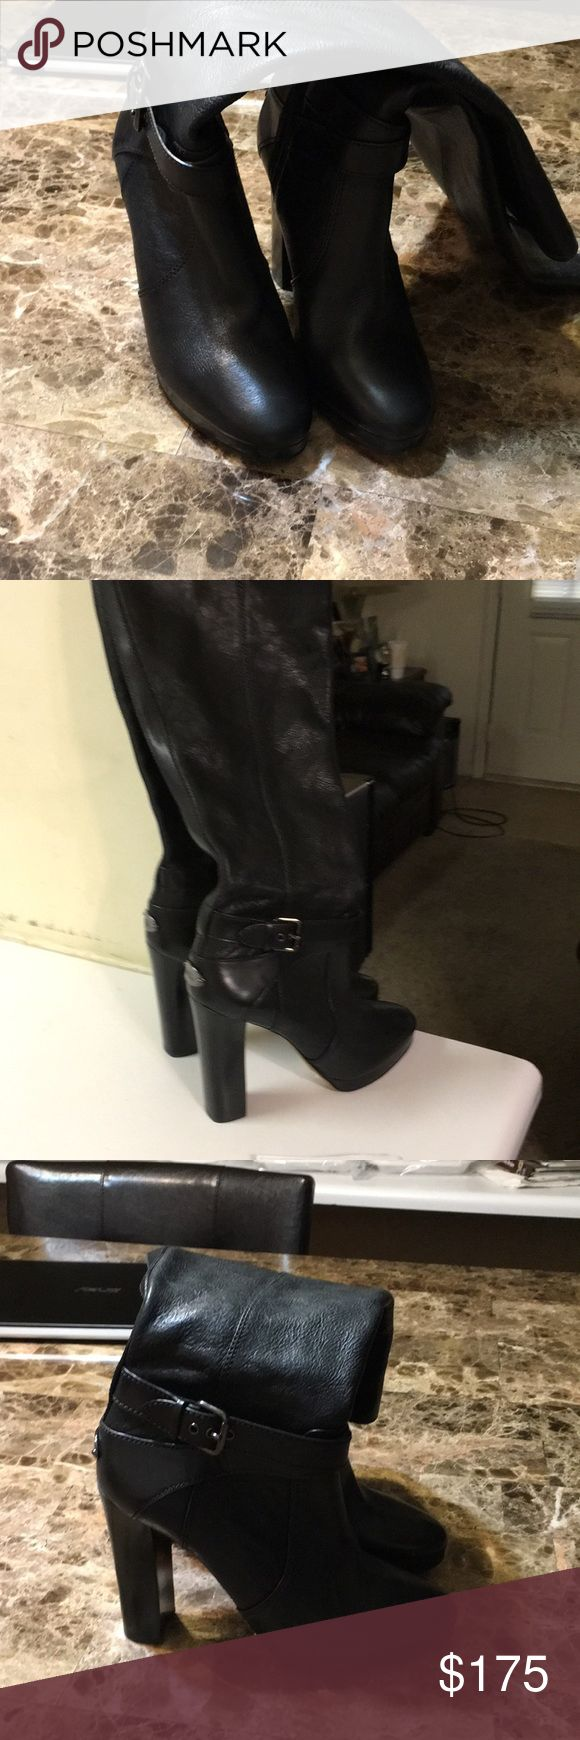 Coach Boots Tall black Coach Boots come to your knees. Never been worn. Just need a new home. Coach Other